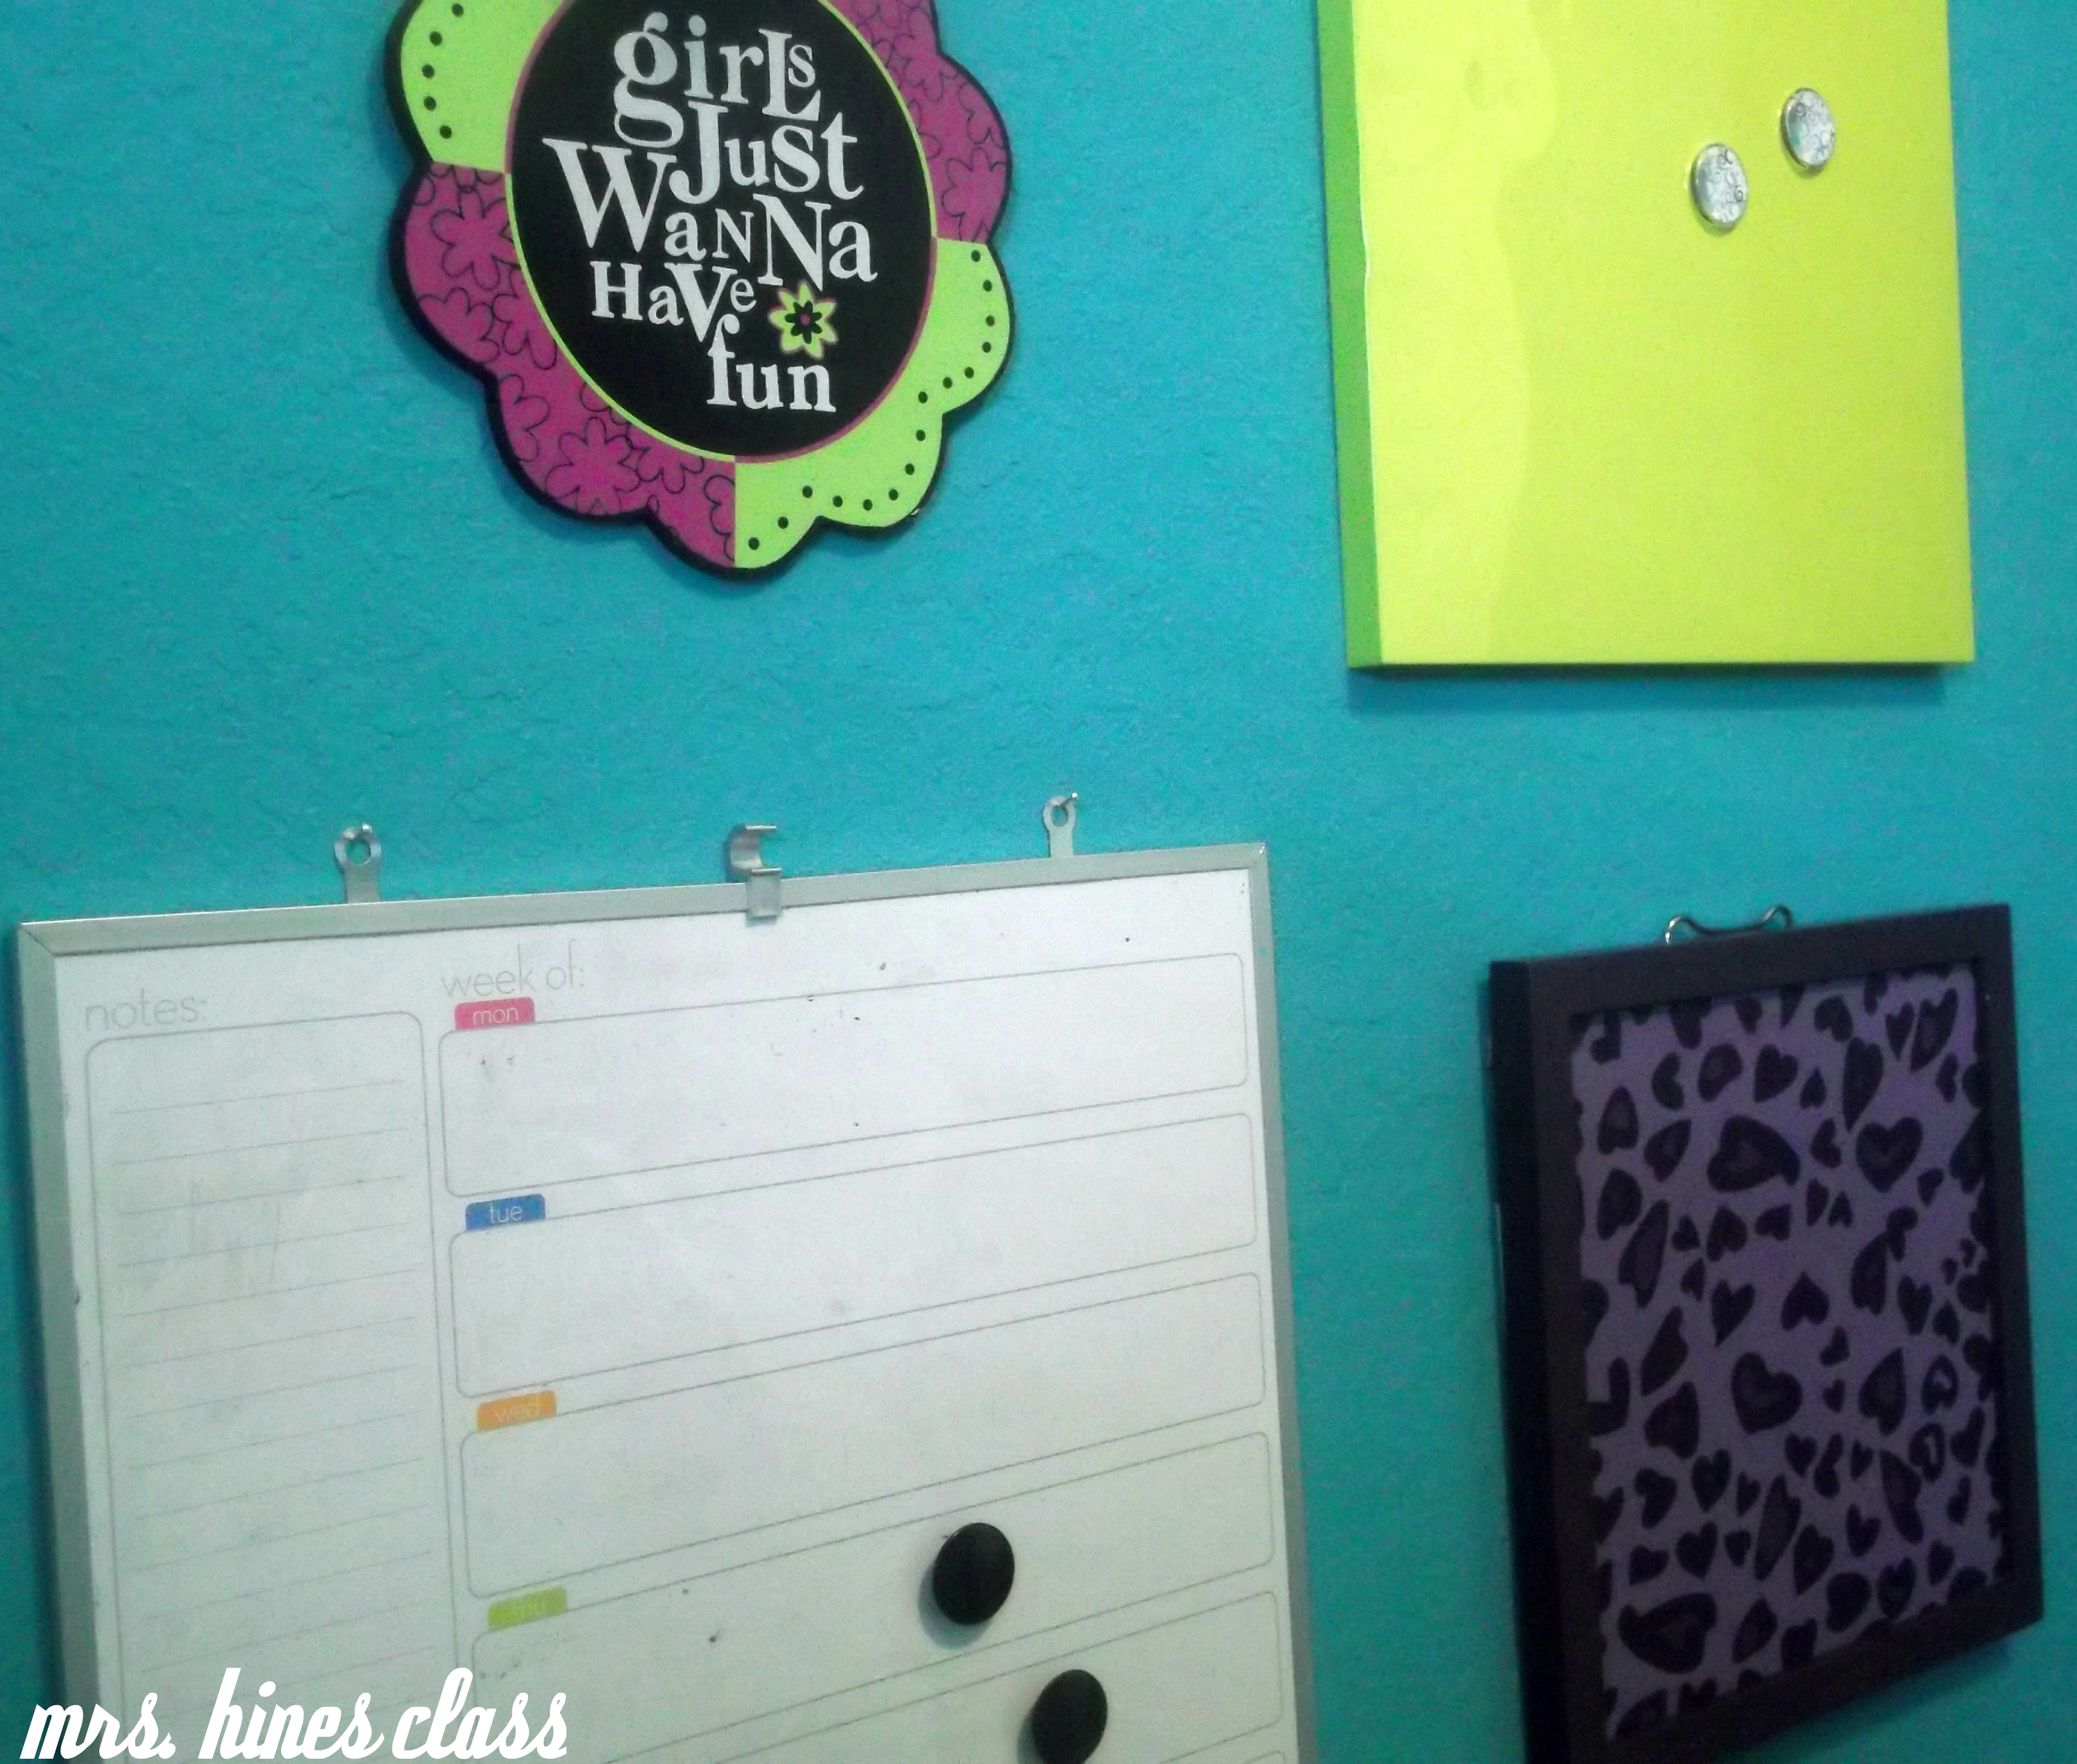 teen, room, bulletin board, dry erase, wall, decor, home, bedroom, message, magnetic board, cork board, purple, teal